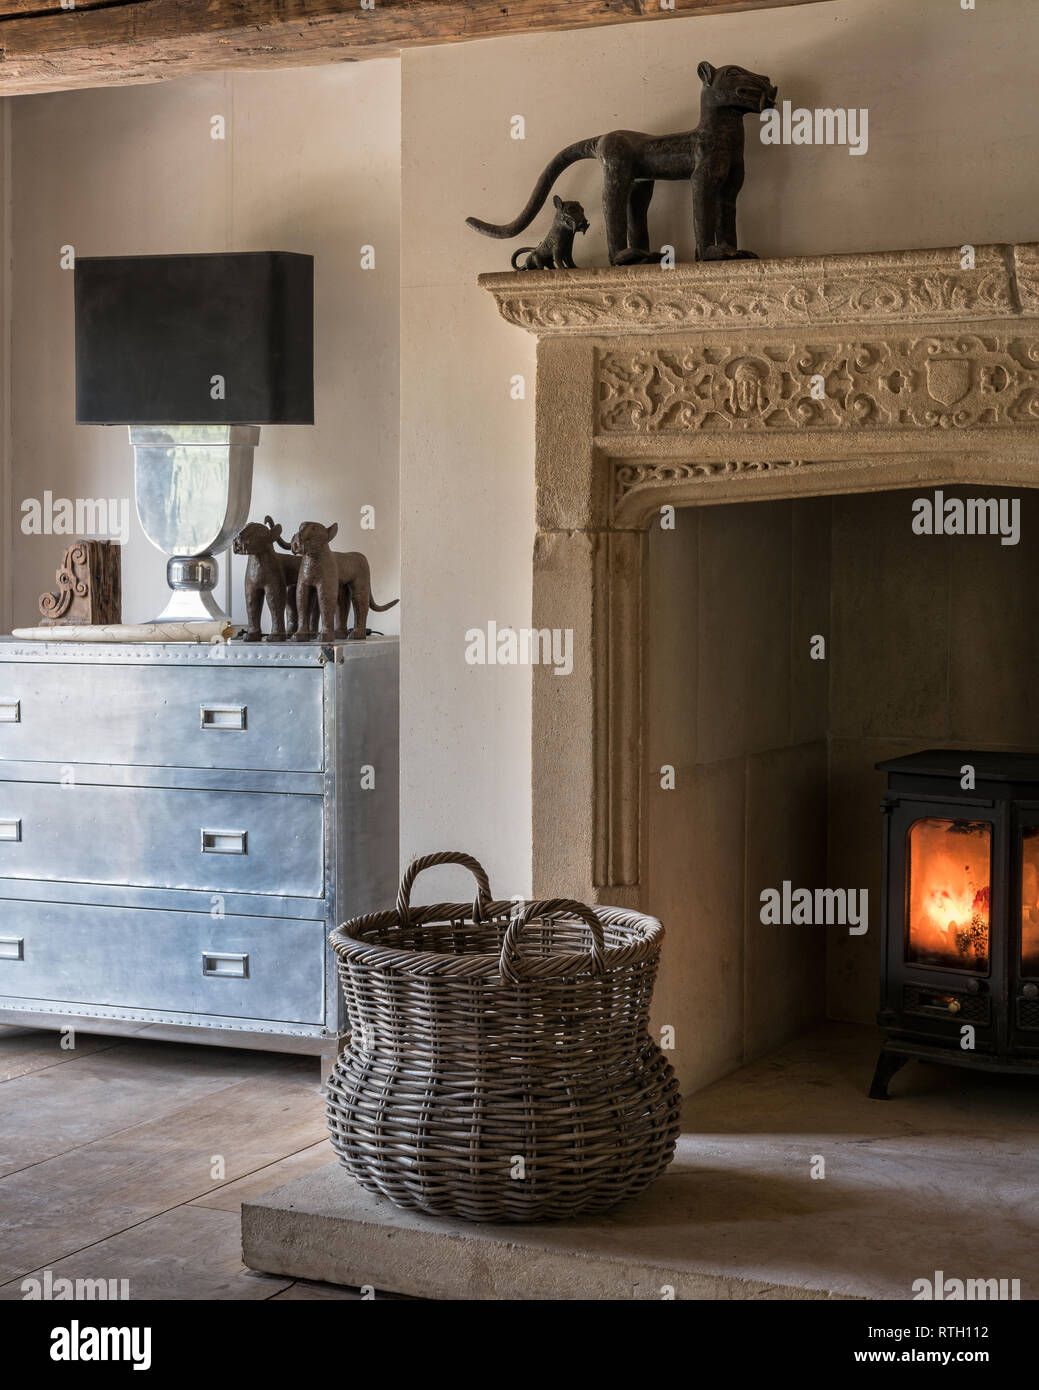 Decorative medieval fireplace with aluminium chest - Stock Image